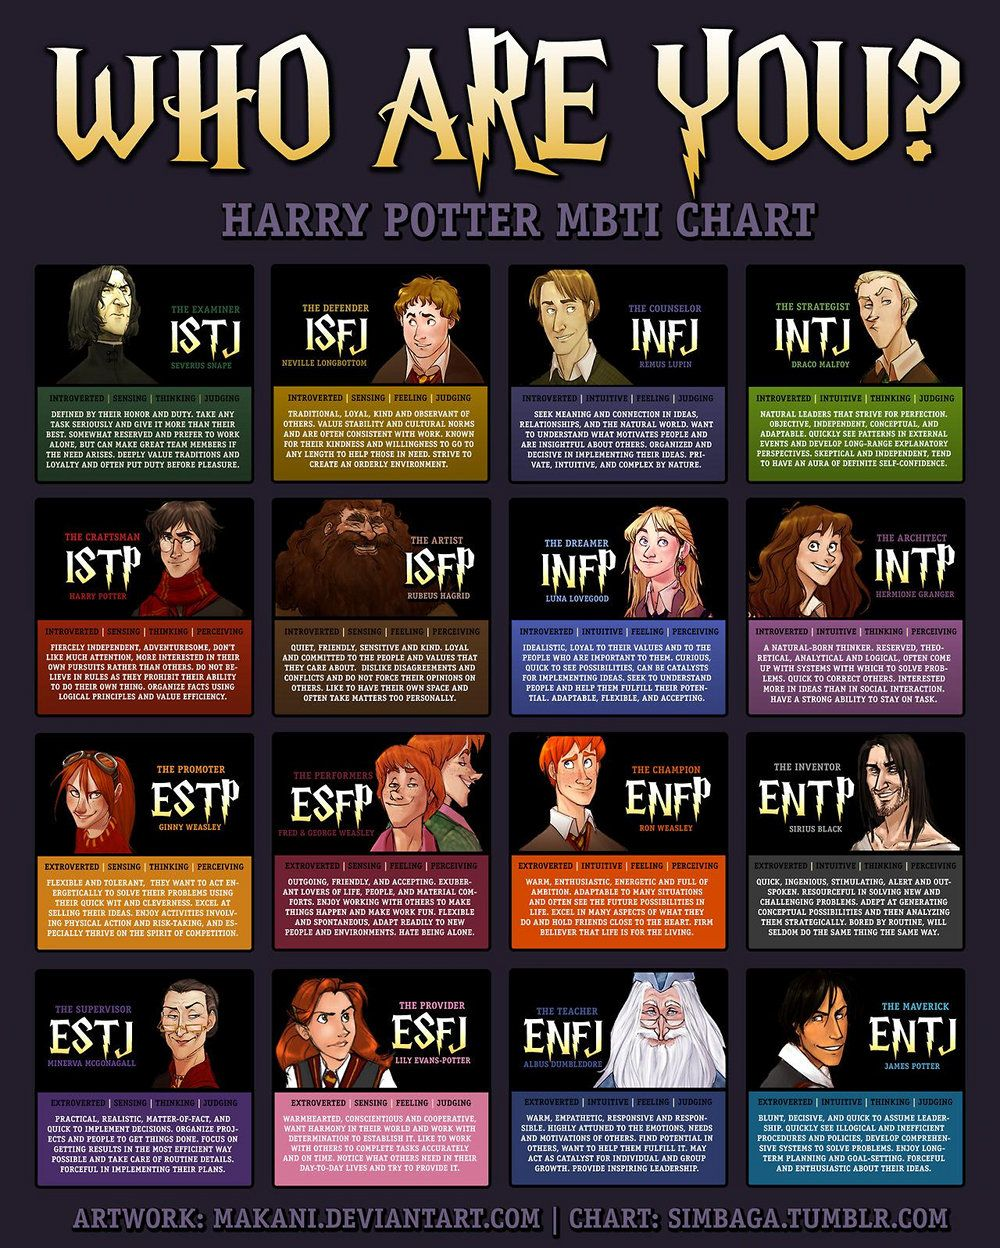 Geekologie Gadgets Gizmos And Awesome Harry Potter Personality Harry Potter Characters Mbti Charts